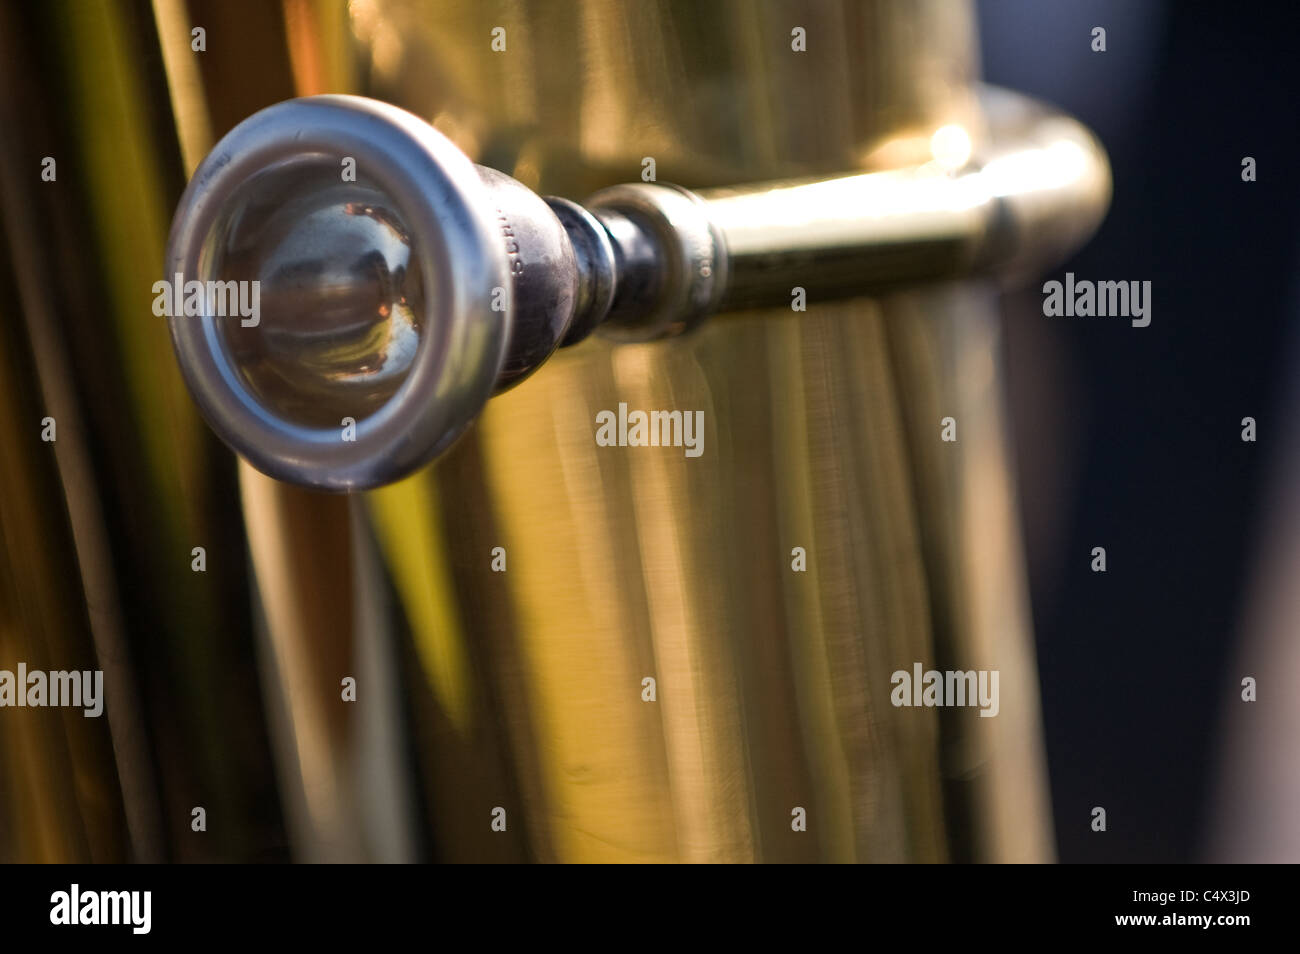 At the Fullerton graduation ceremony a close up picture of a tuba mouthpiece. - Stock Image